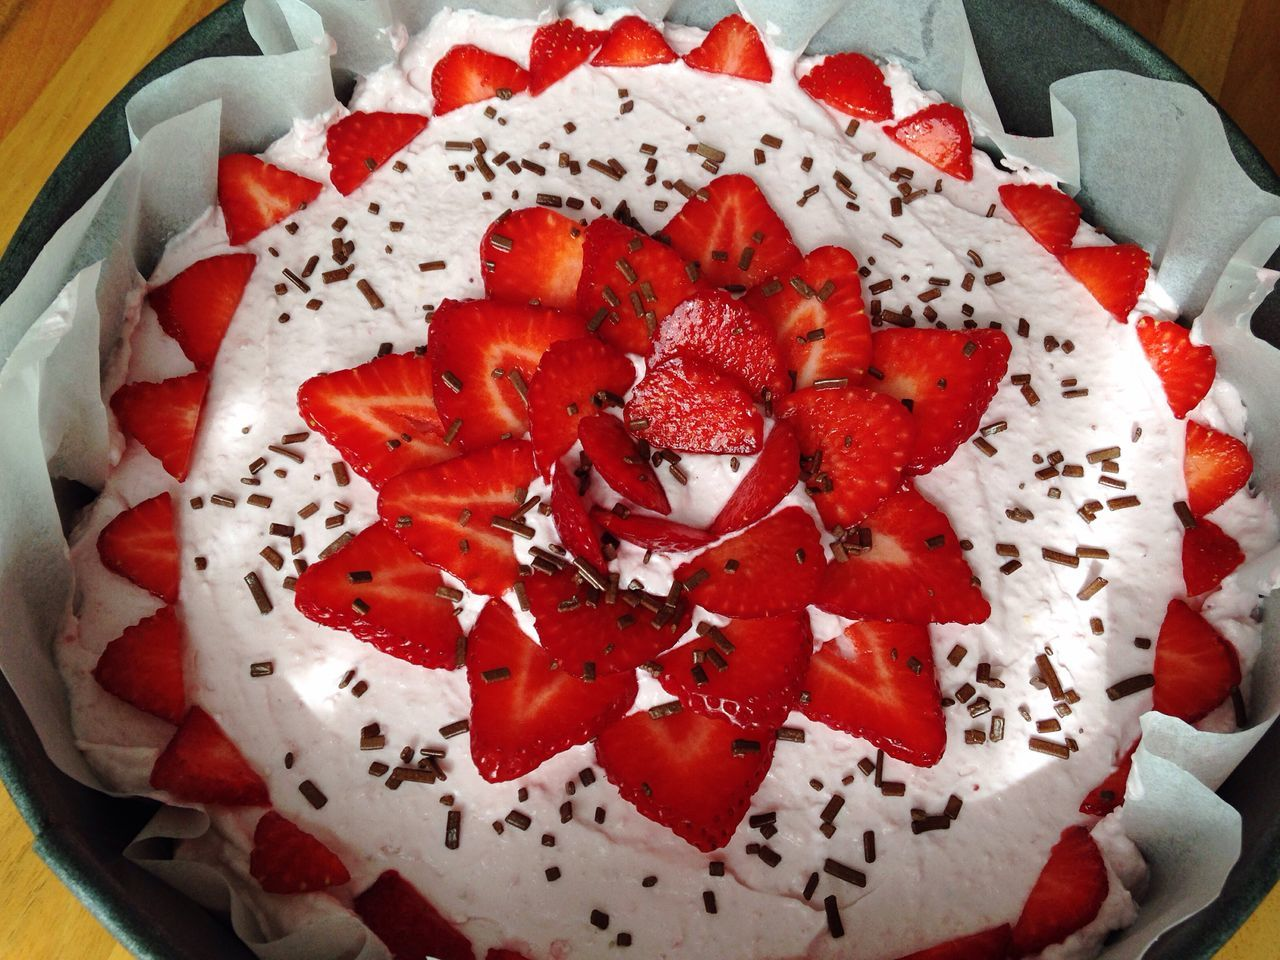 Strawberry Cake Homemade Cooking At Home Spring Flavours Spring Fruit Strawberries Cheescake Homemade Food